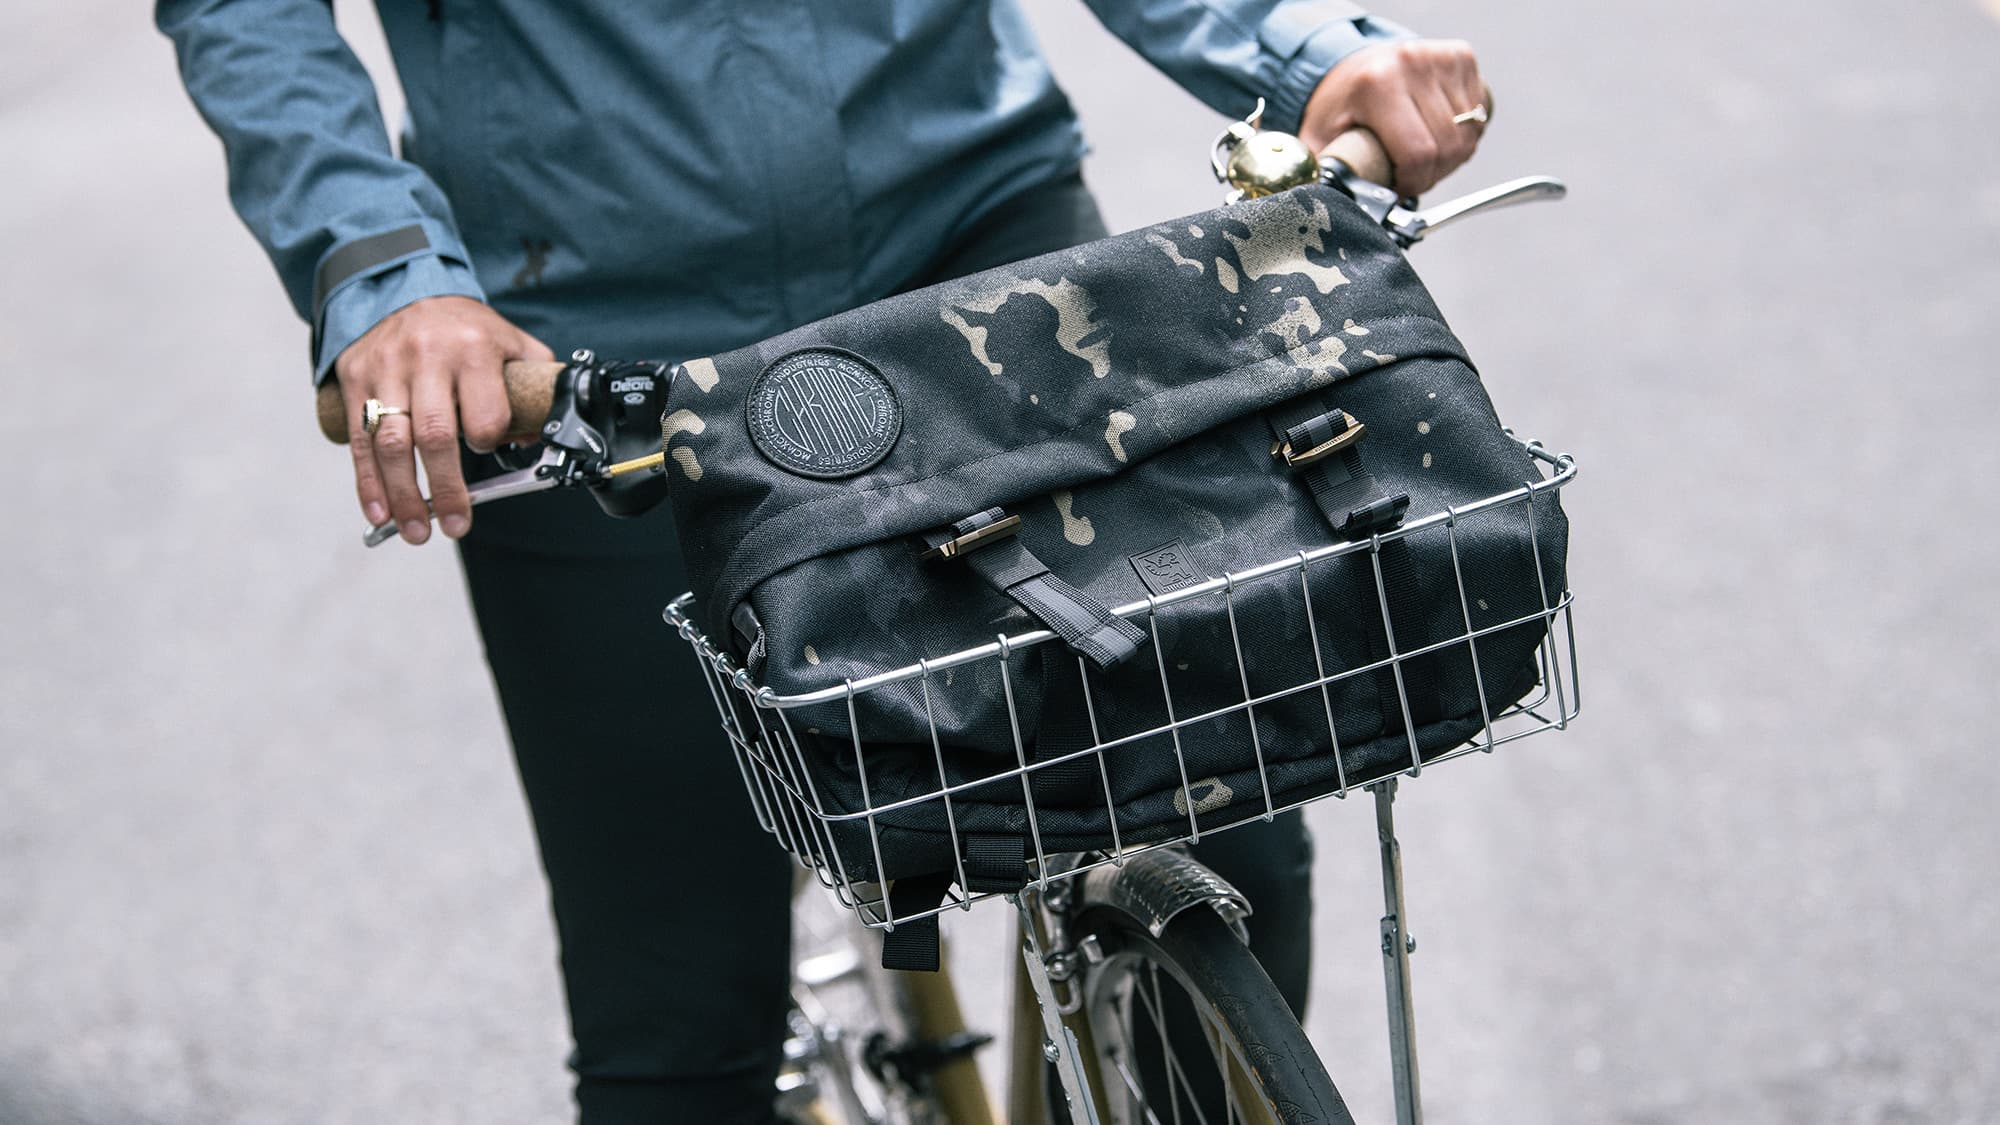 Vale Sling Bag in bike basket